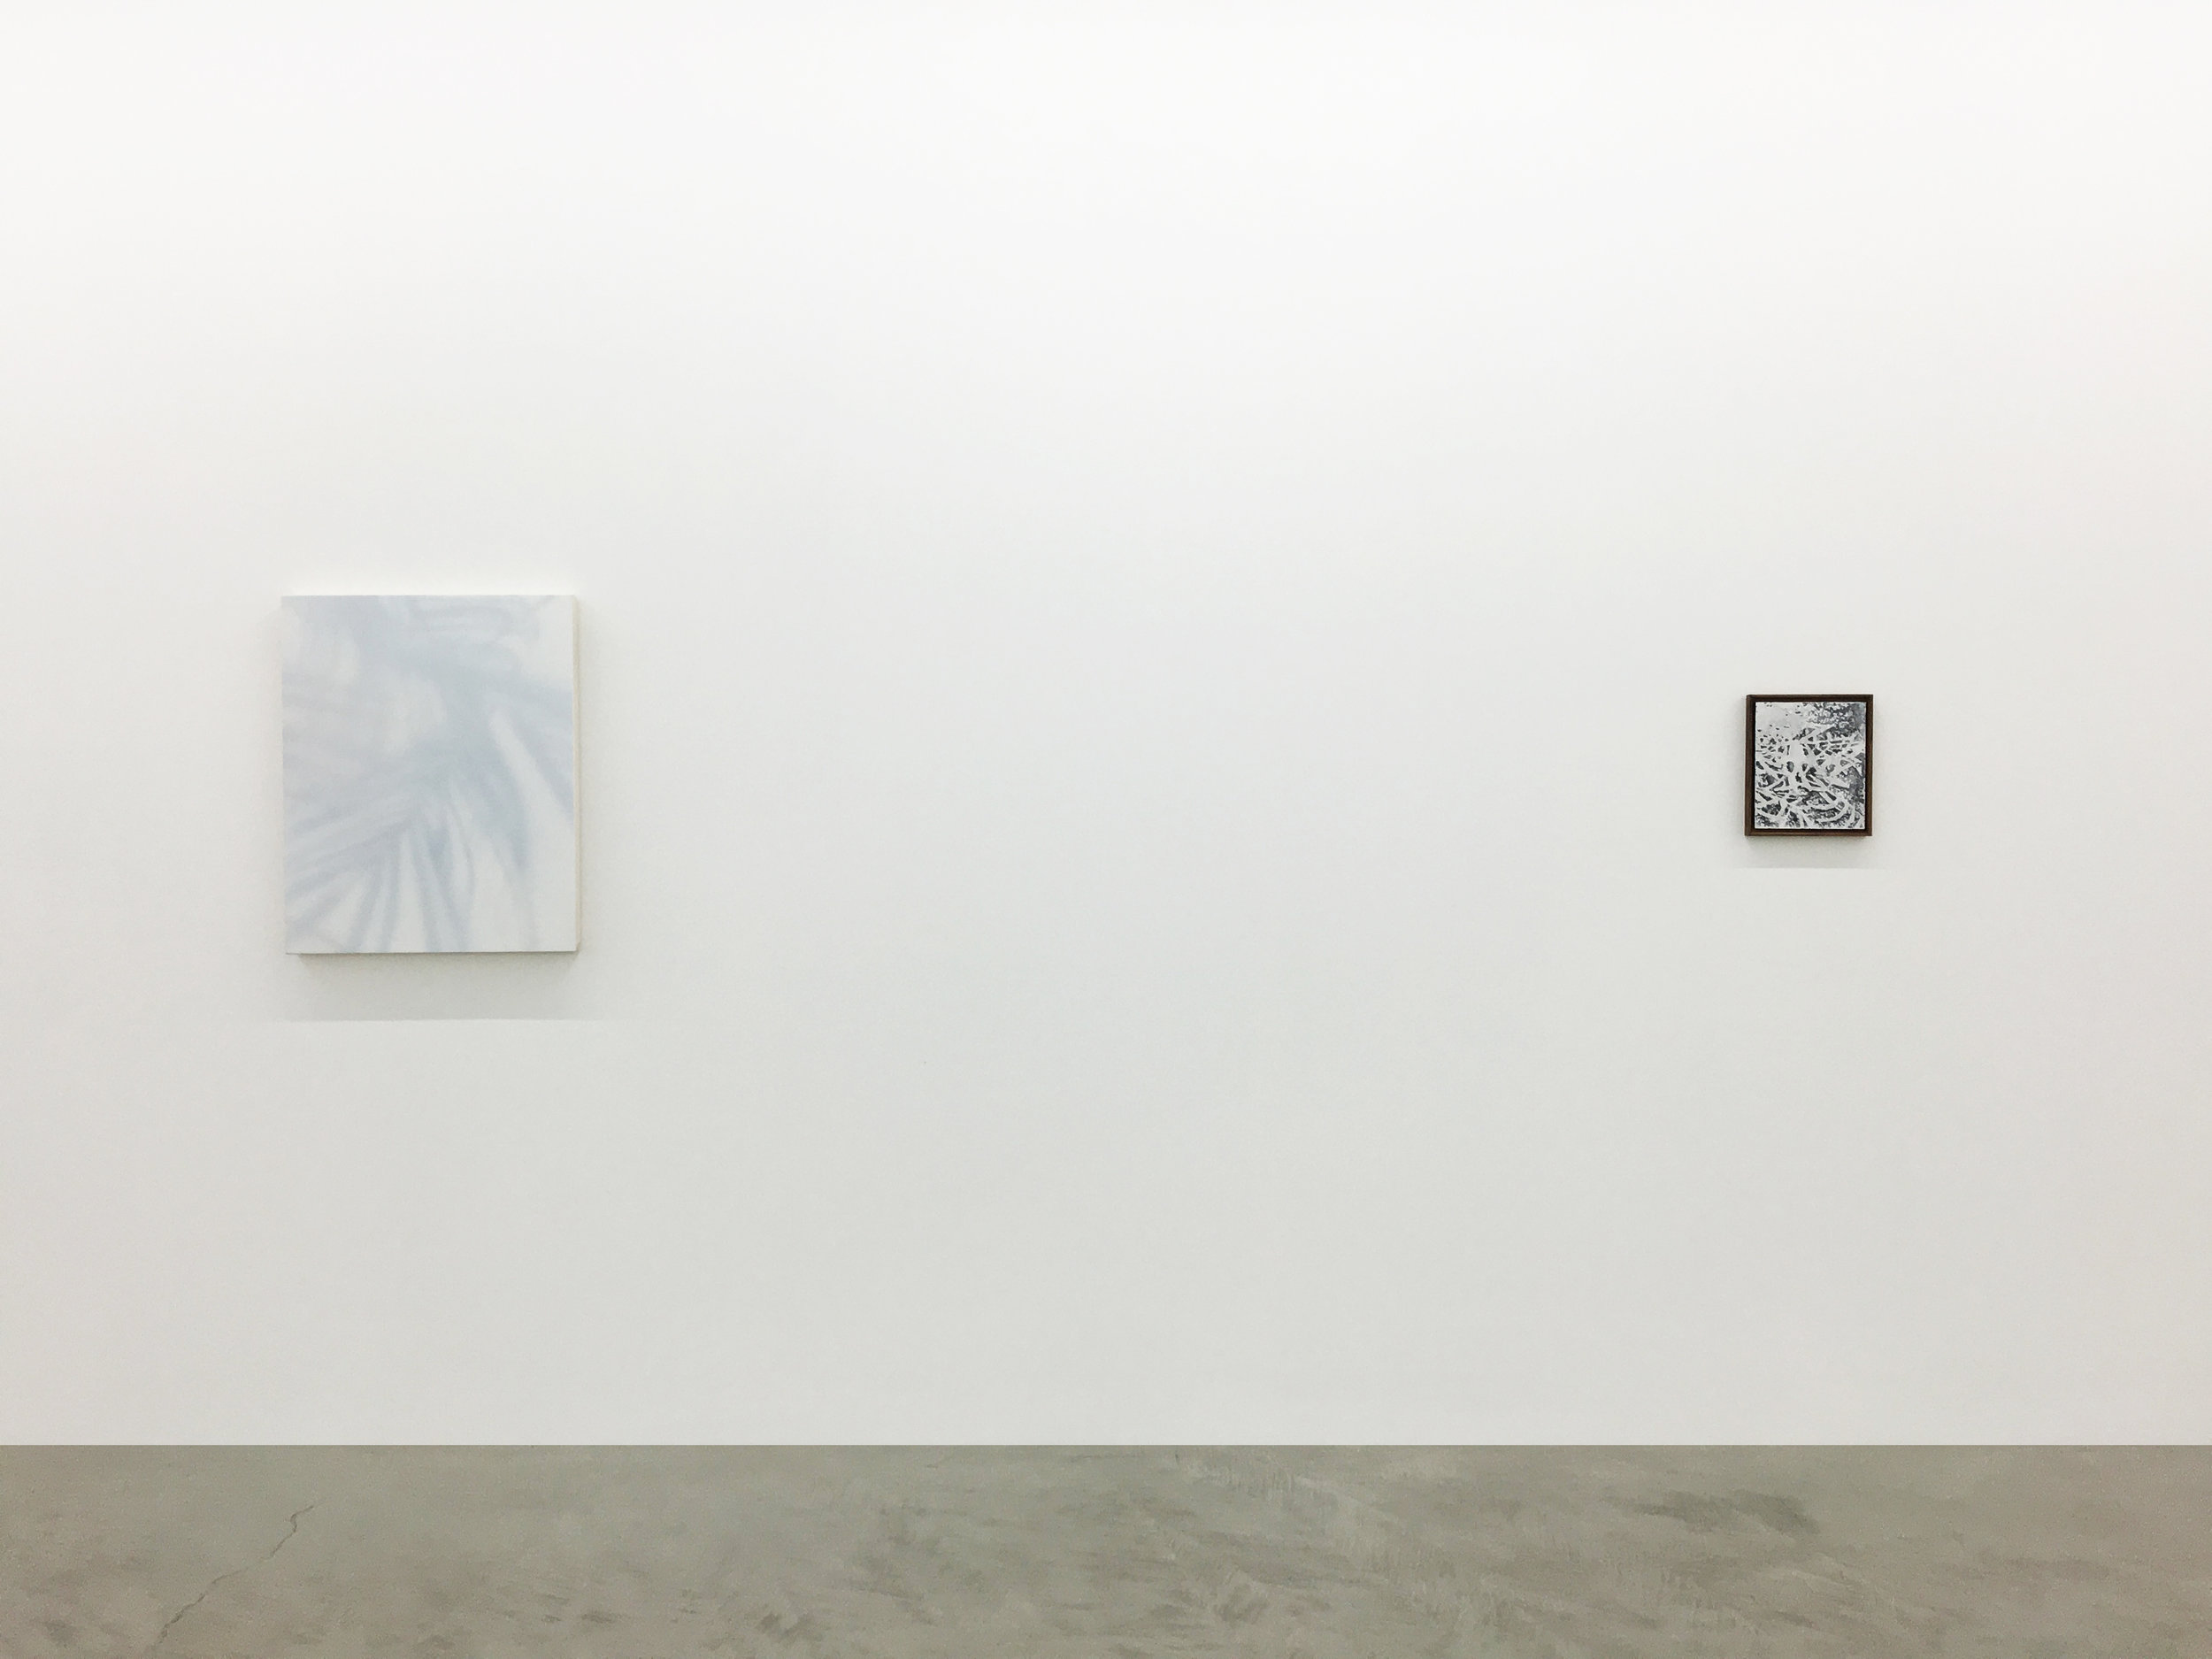 Installation view of James Case Leal paintings depicting plant shadows.